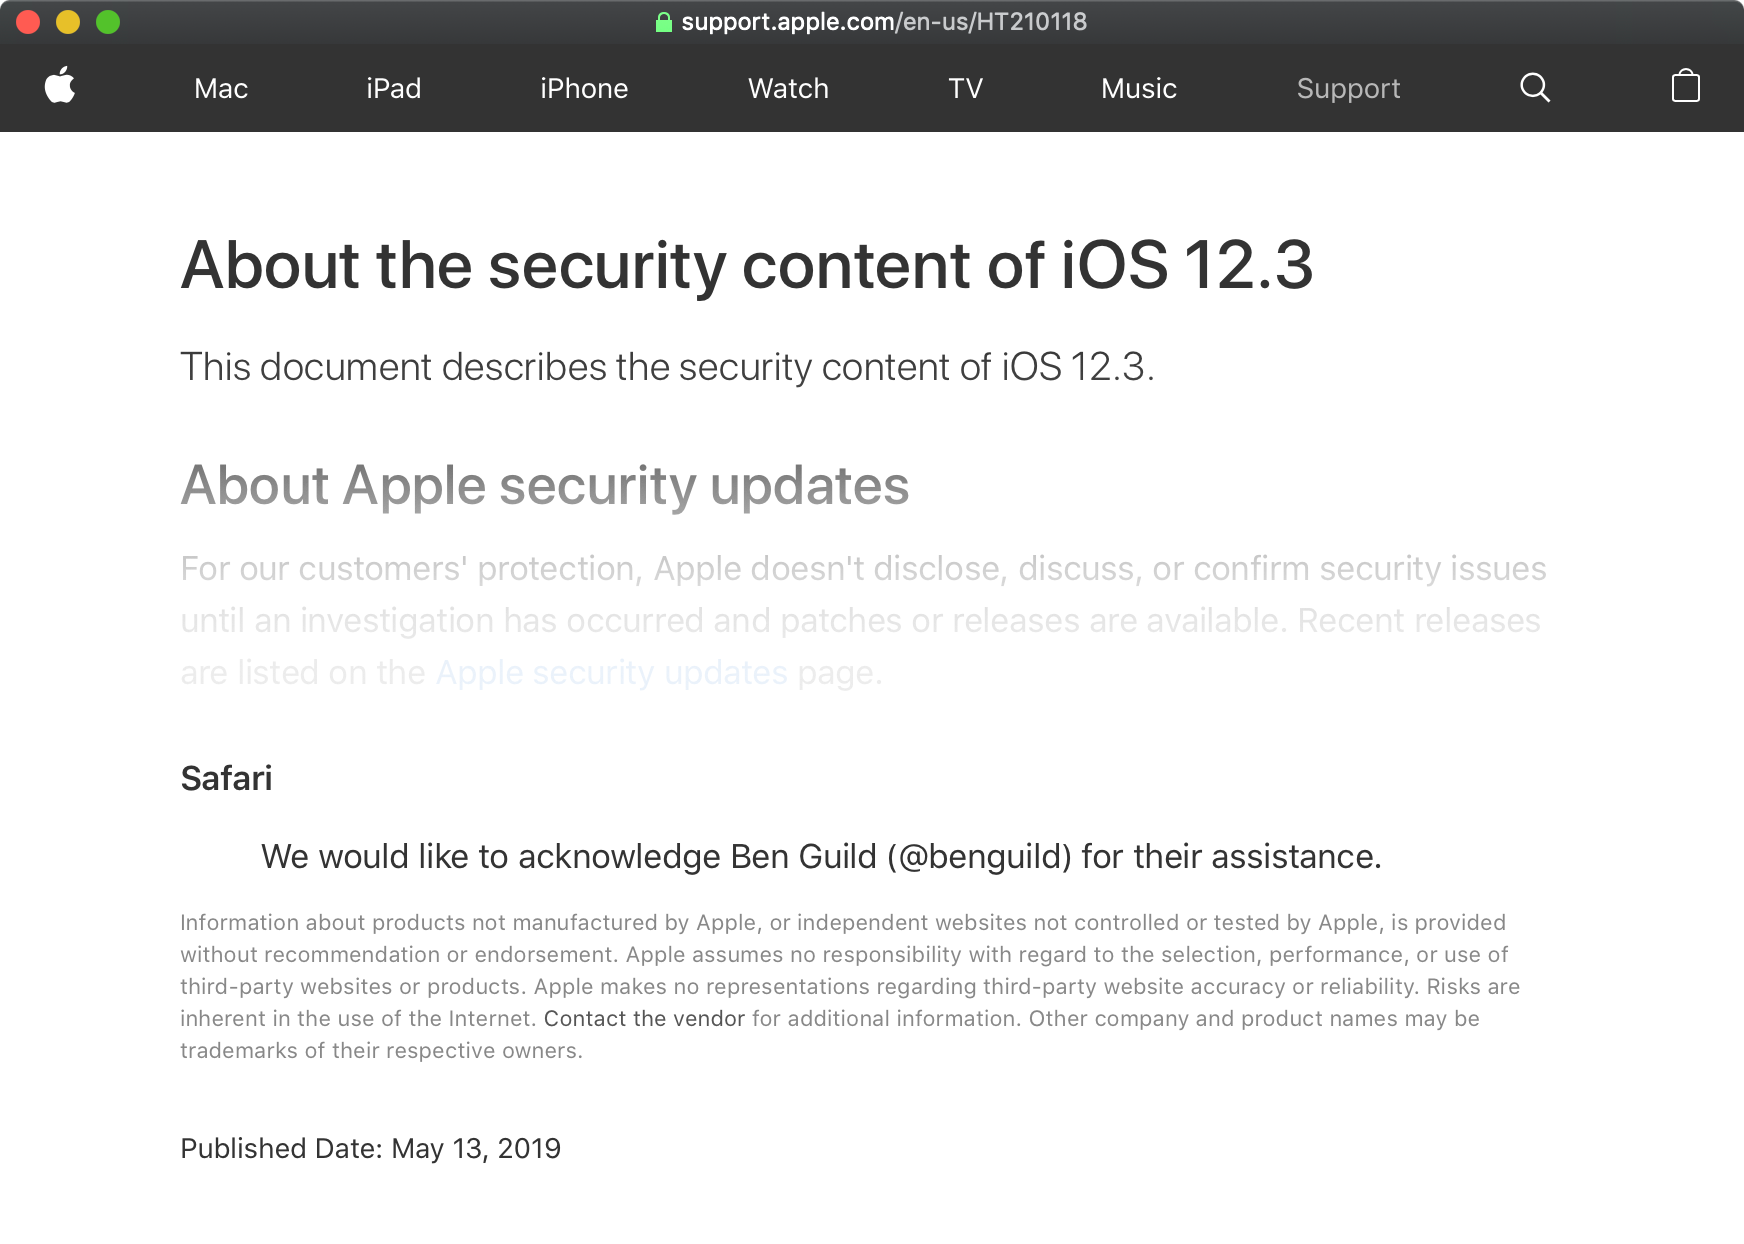 A screenshot of Apple's article regarding the security content in yesterday's iOS 12.3 release.